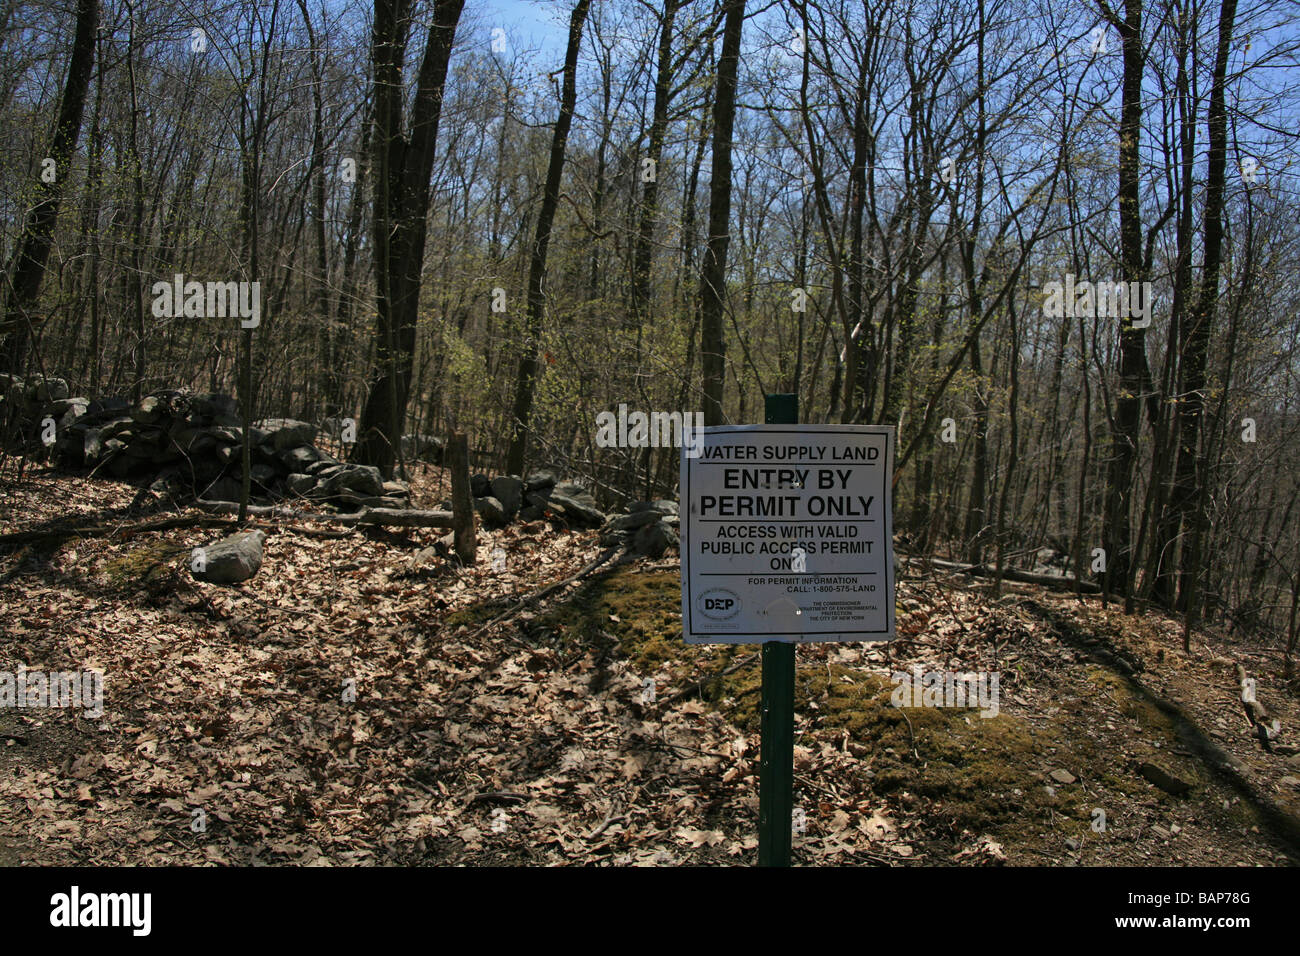 Water supply land in Kent, Putnam County, New York State, USA - Stock Image